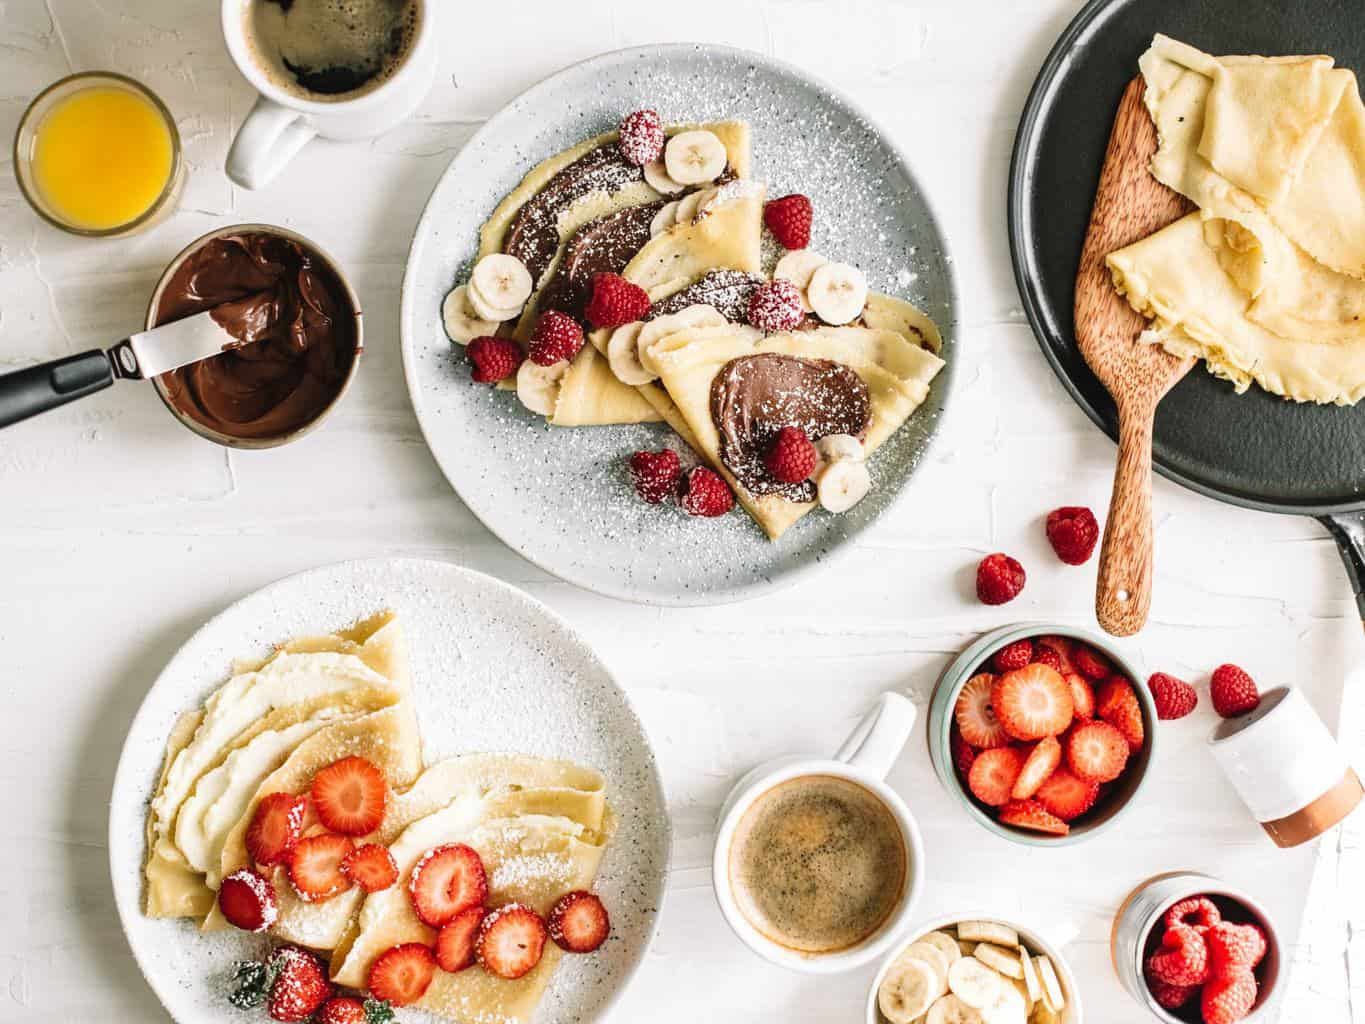 Plates of crepes with toppings.